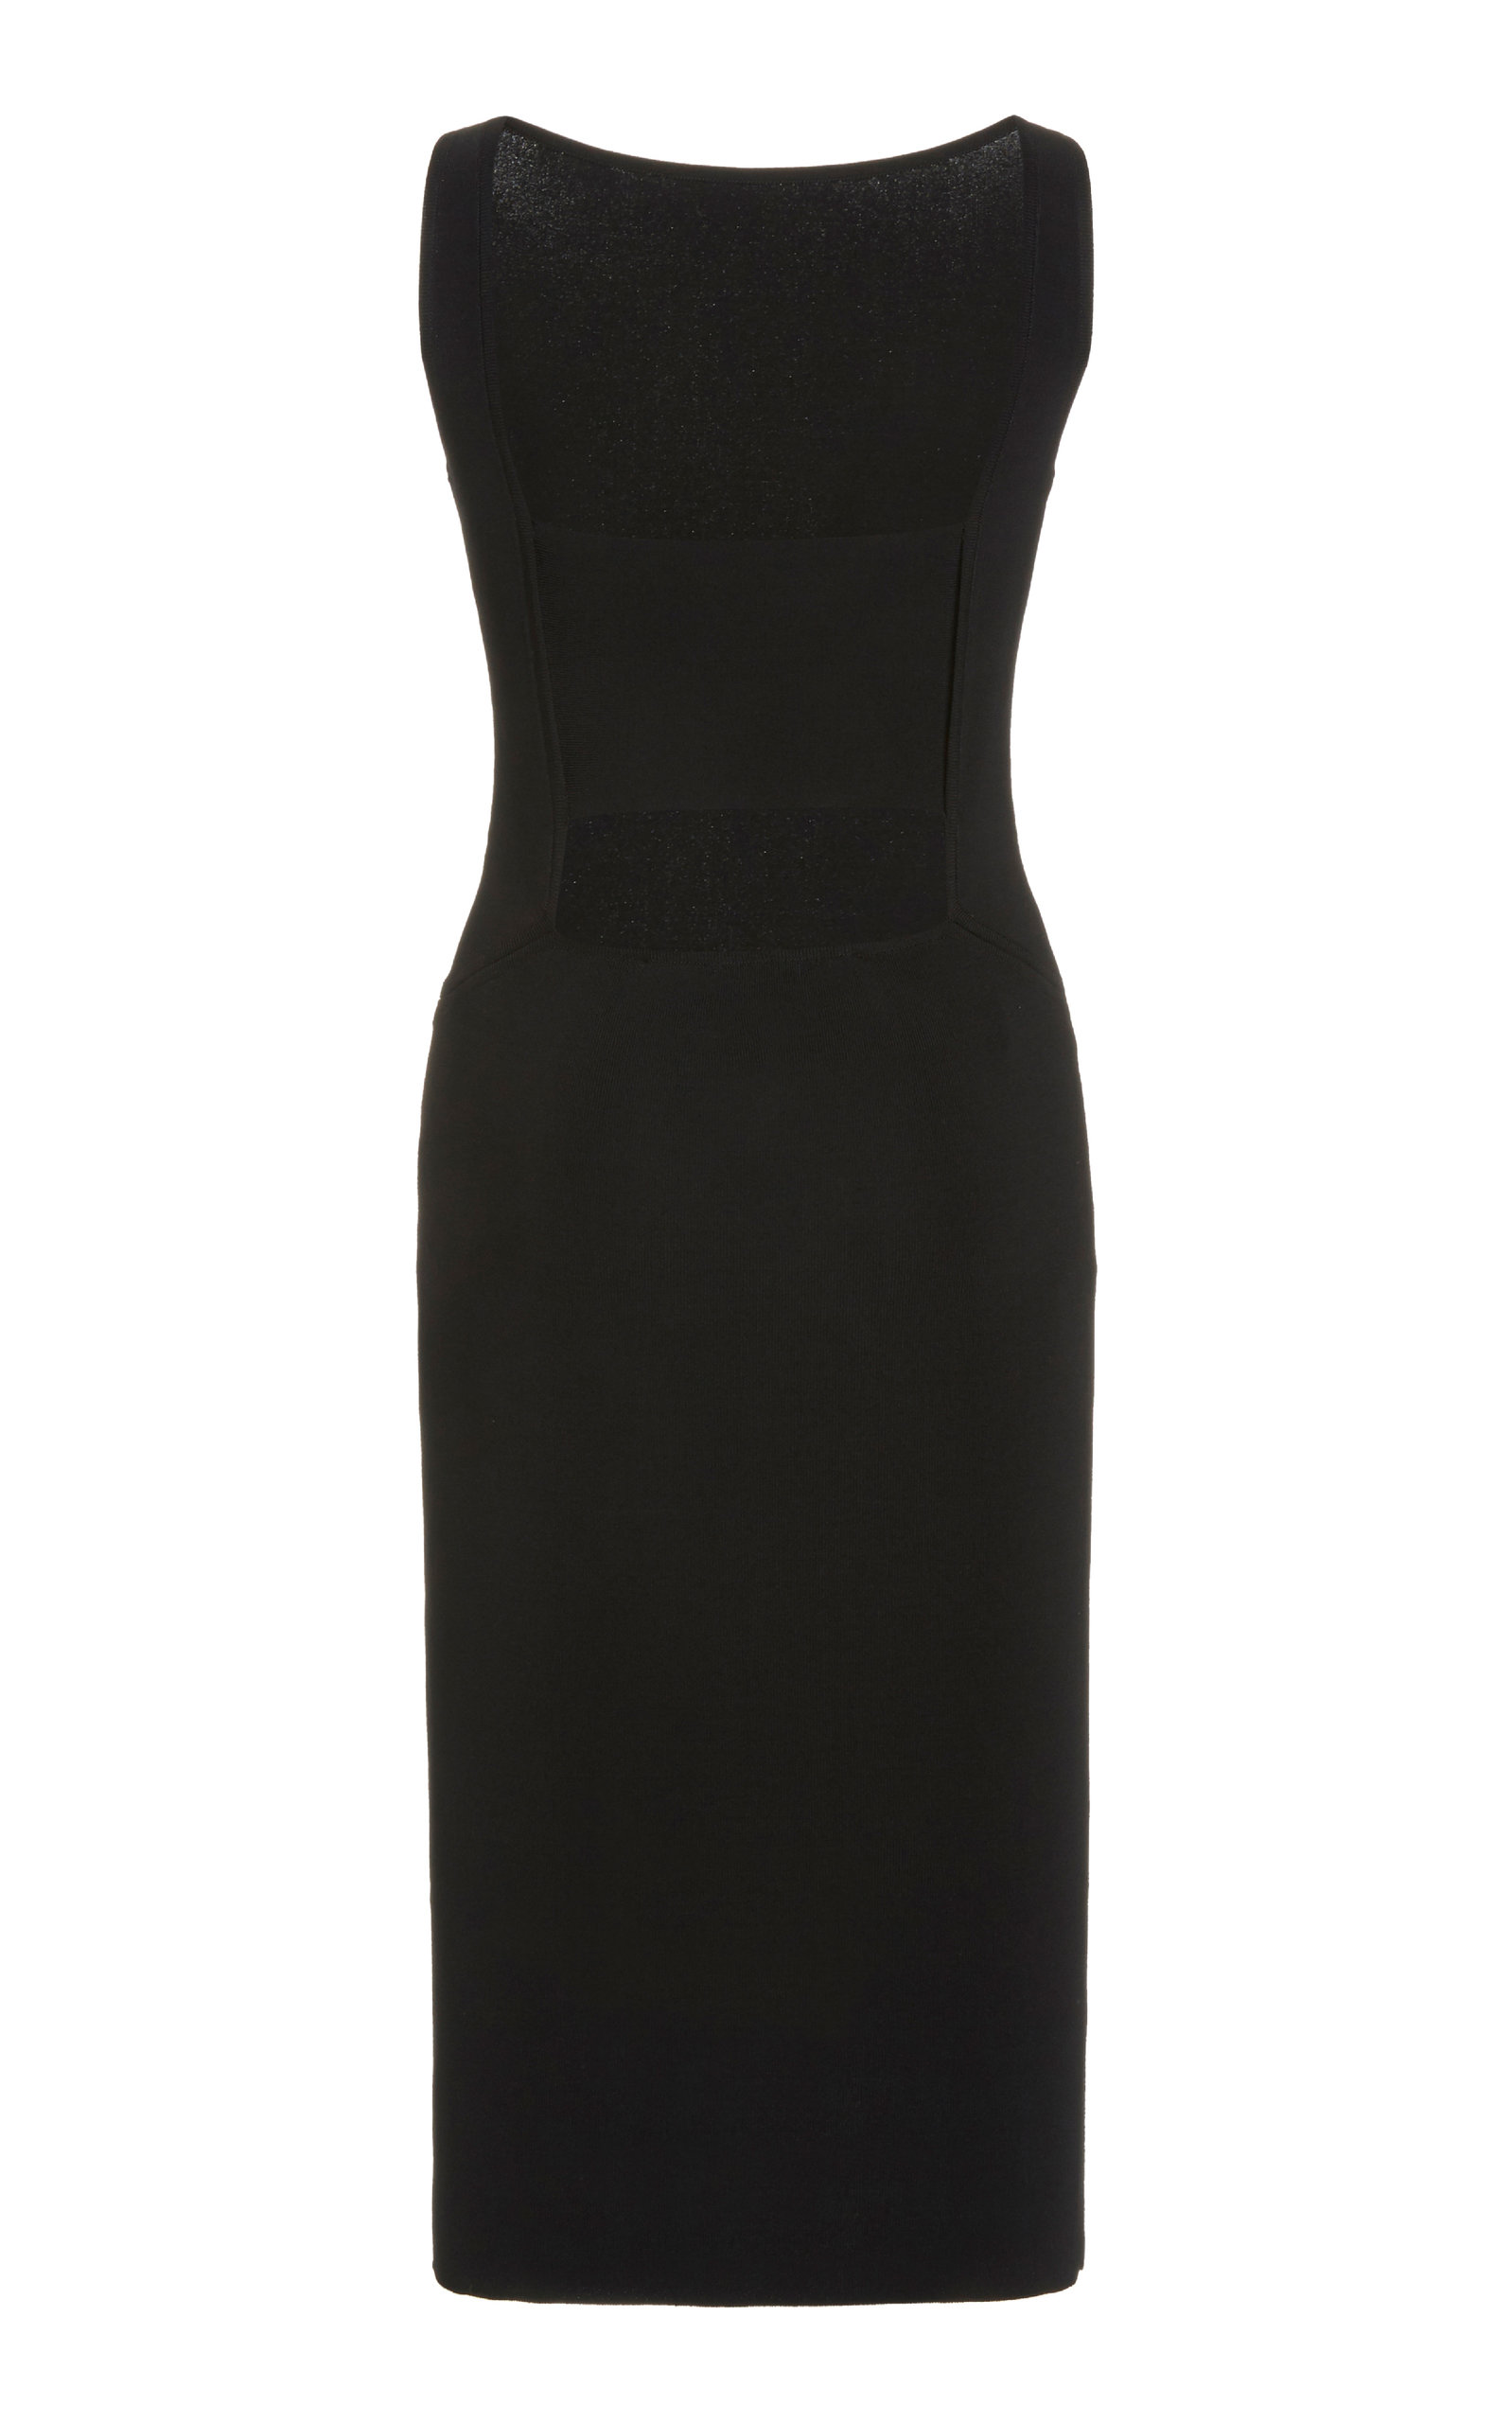 Buy Gauge81 Lausanne Sleeveless Jersey Midi Dress online, shop Gauge81 at the best price